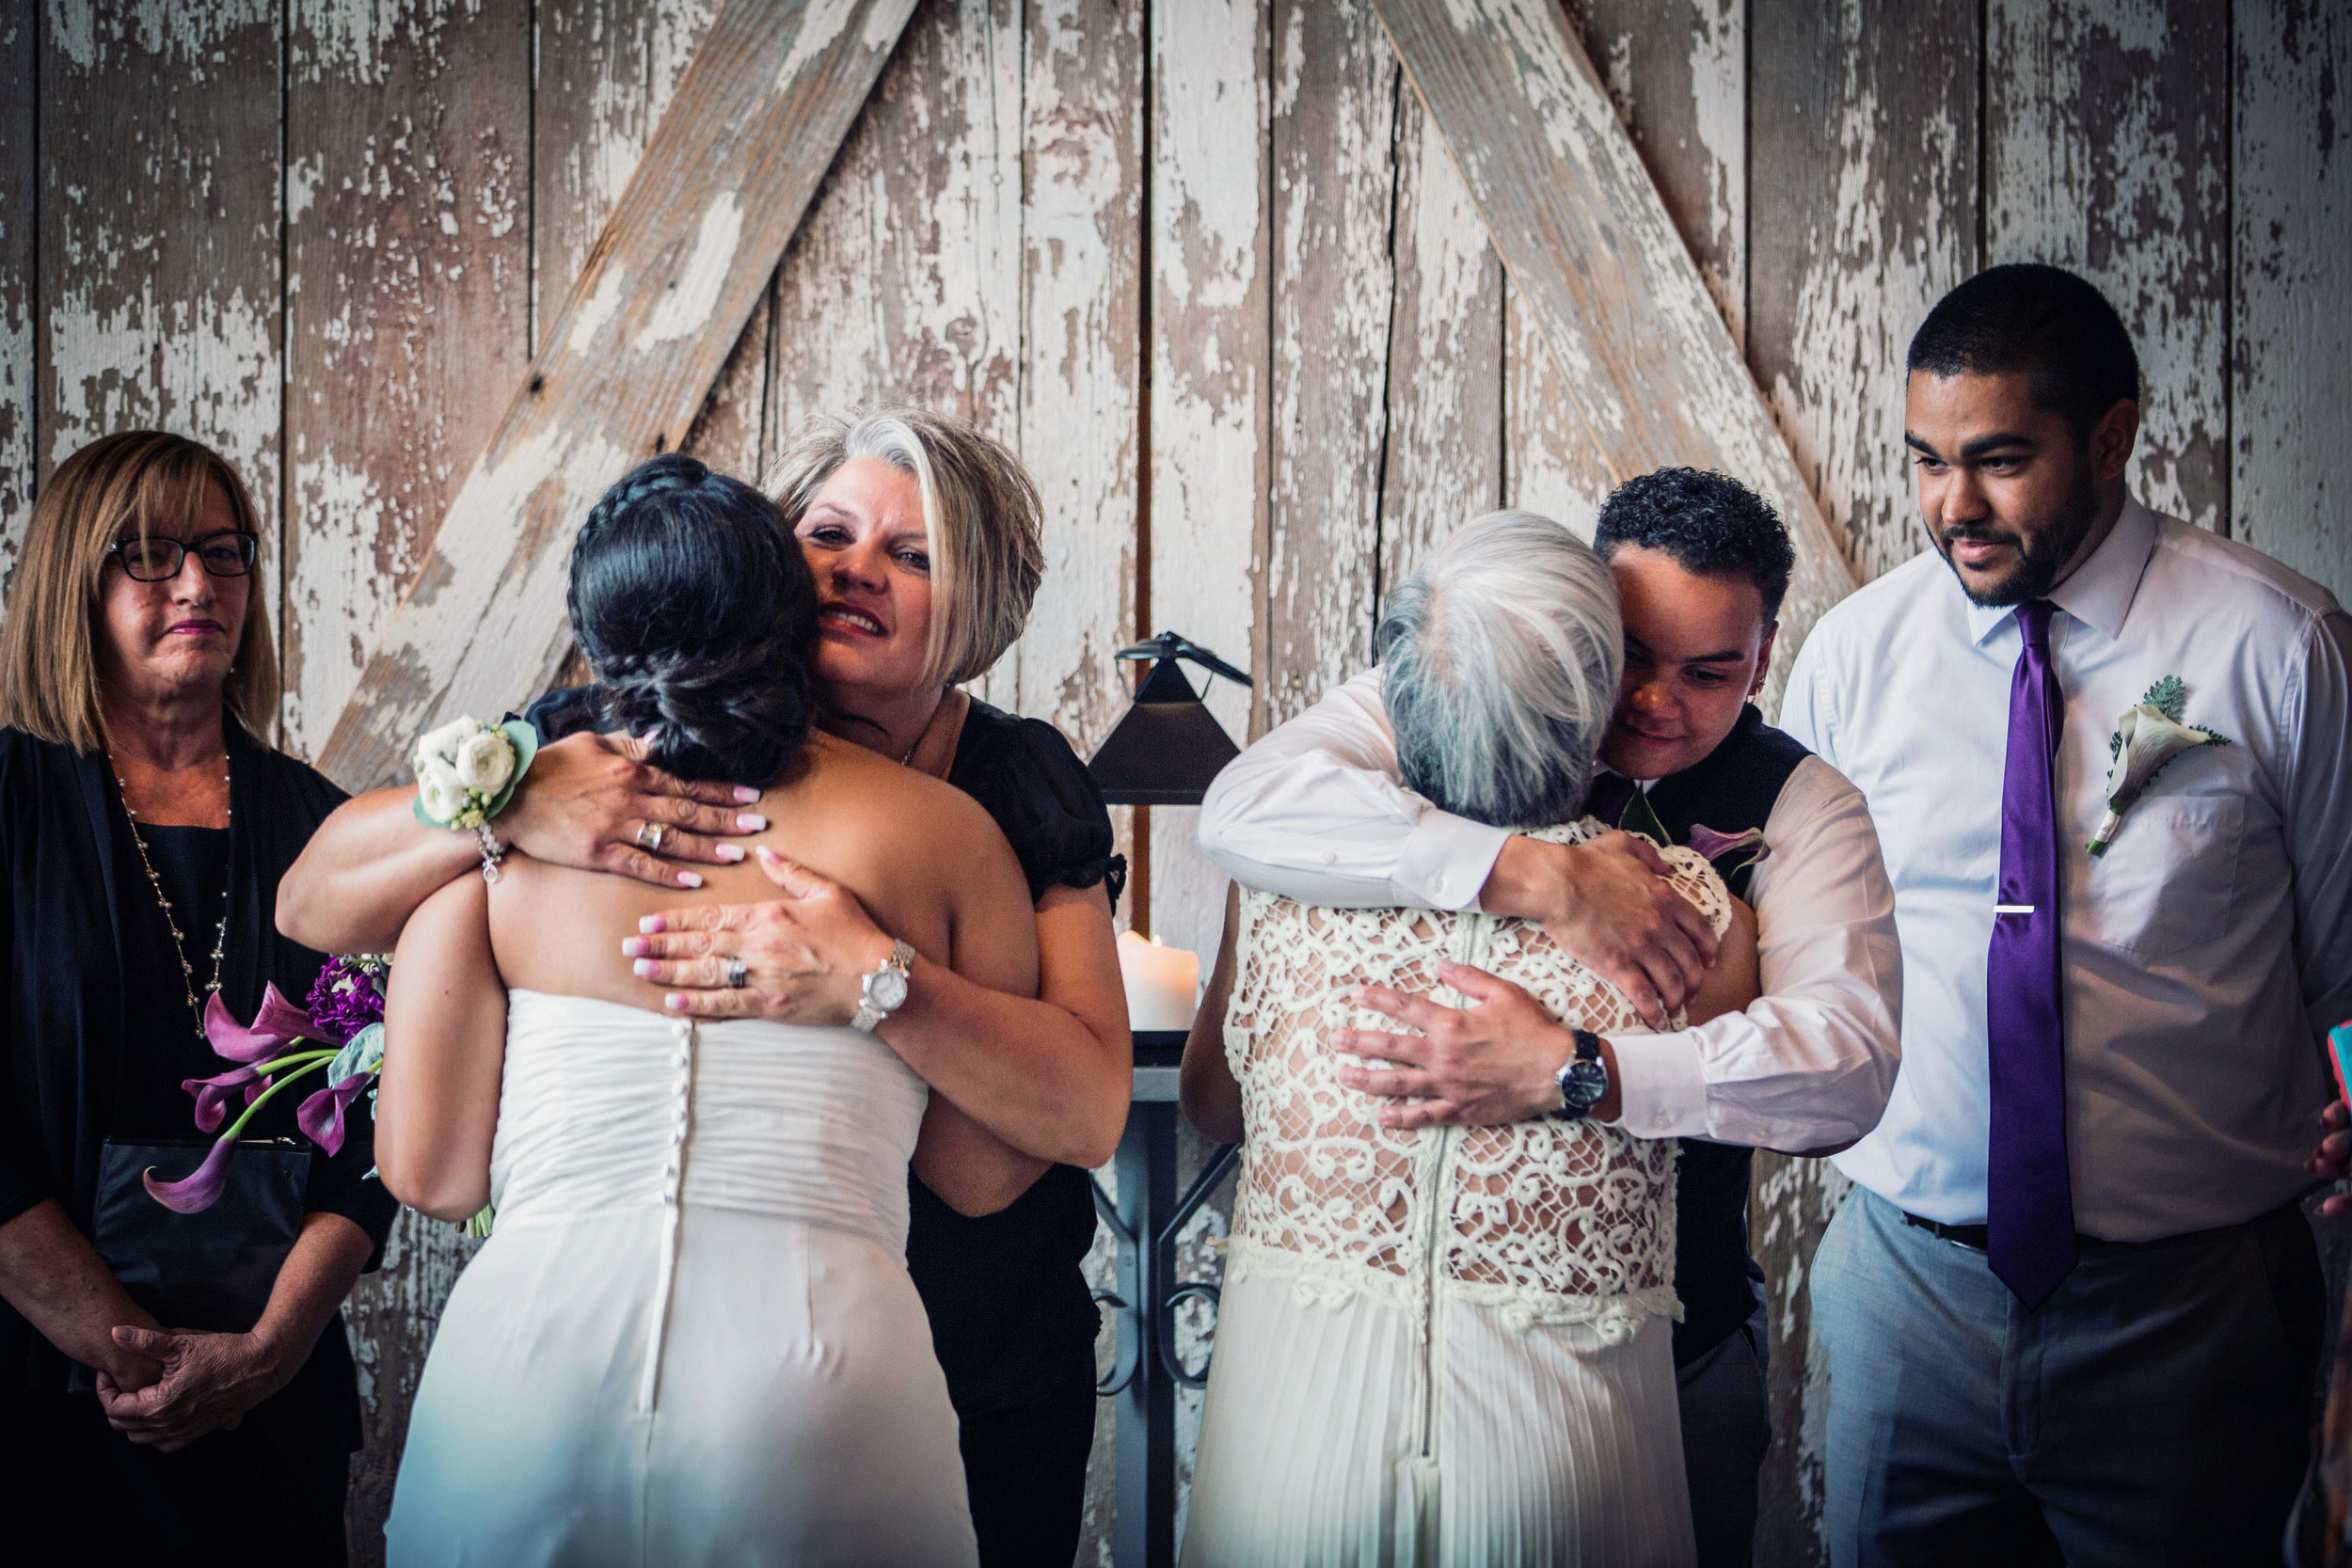 Kansas+City_Small+Wedding_Venue_Elope_Intimate_Ceremony_Constance & Carissa-061b.jpg